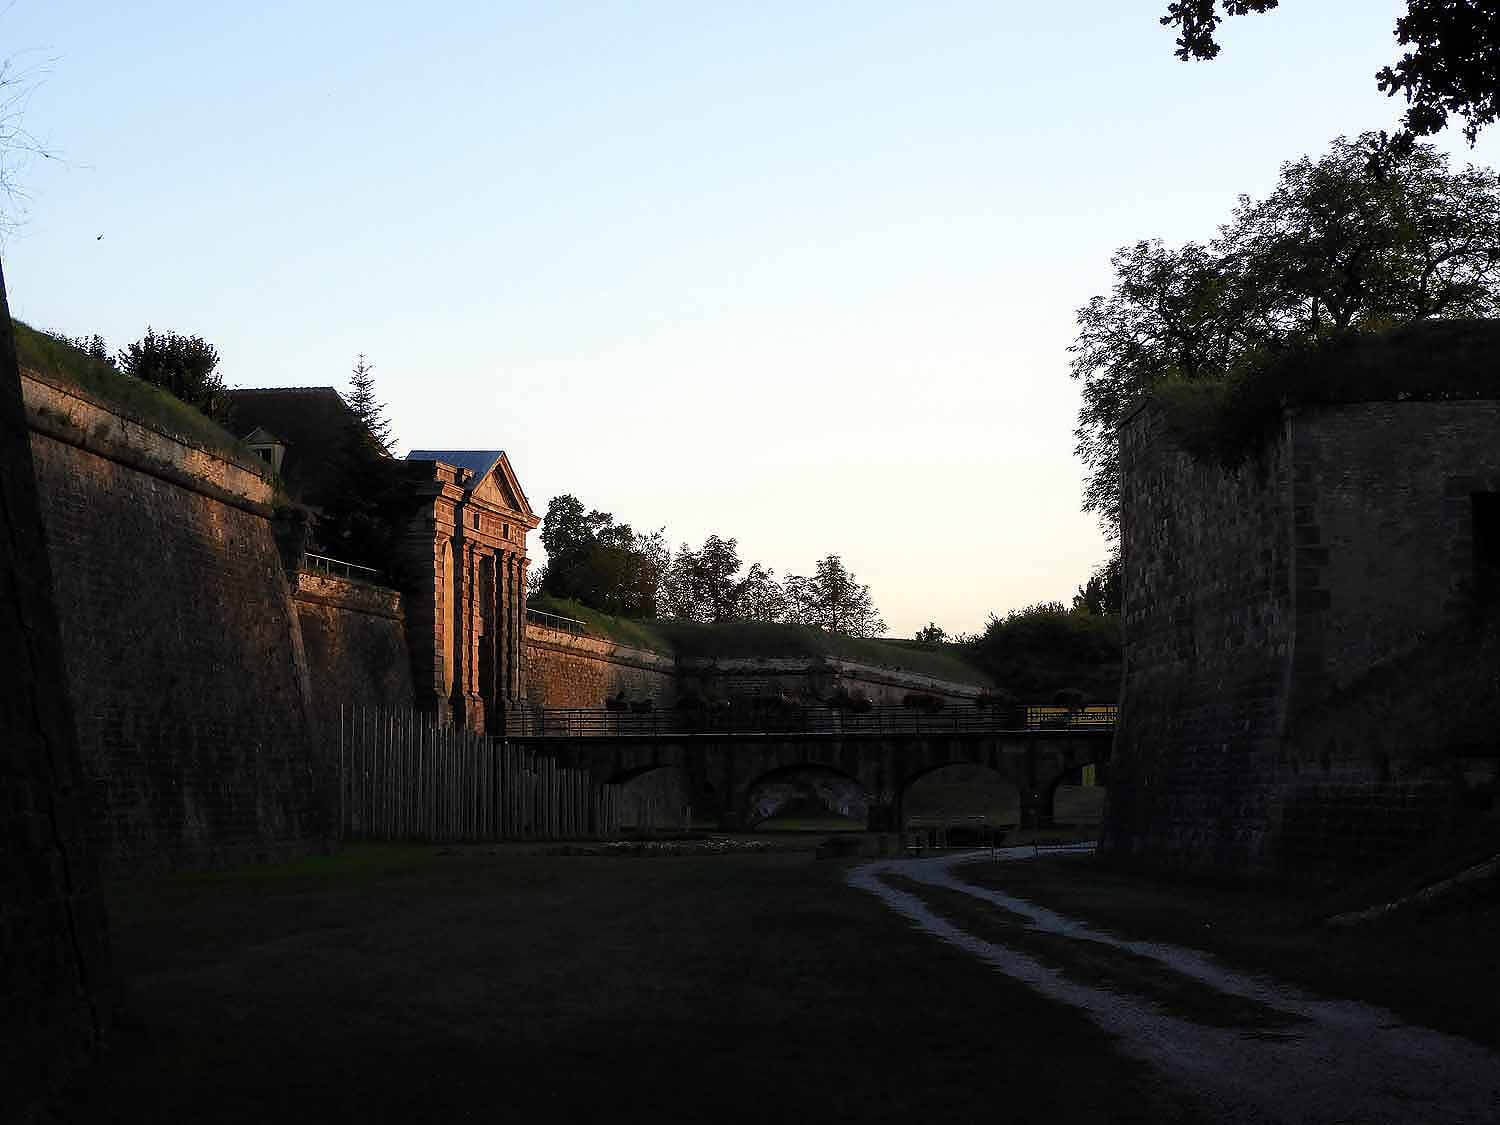 france-neuf-brisach-fortified-city.jpg